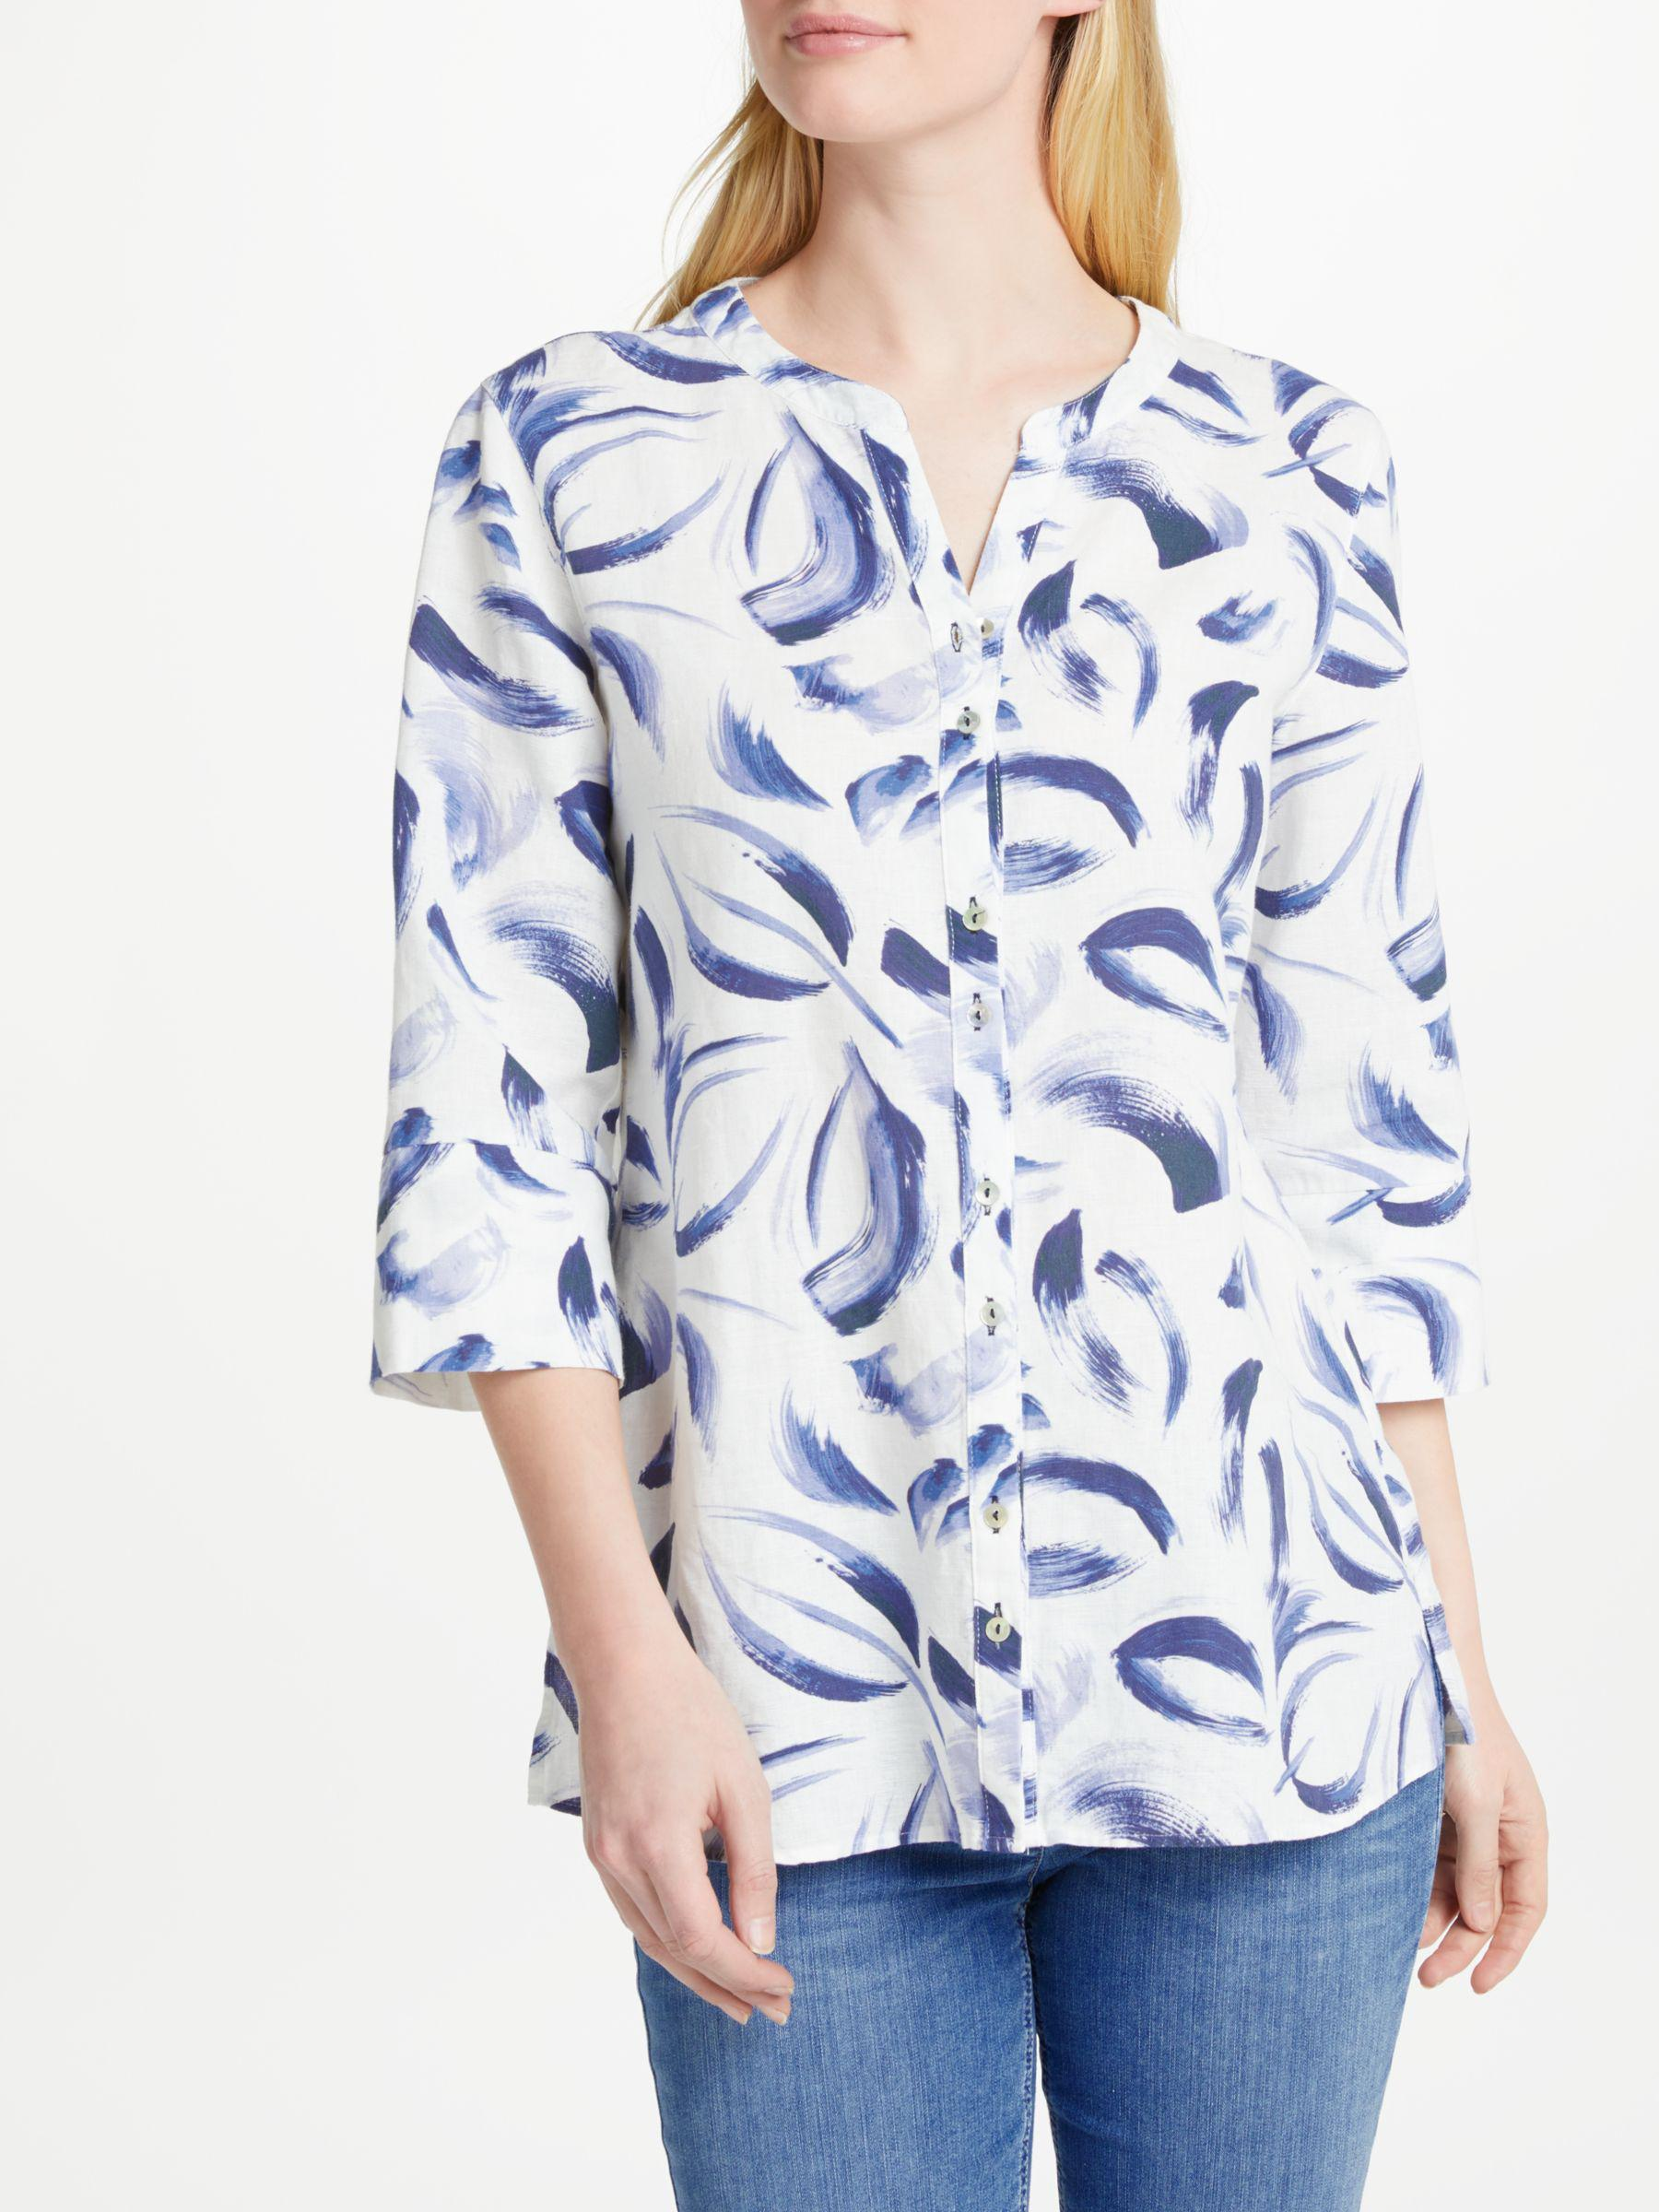 Shirt in pure linen blue female Gerry Weber Clearance Wide Range Of Cheap Manchester Great Sale Purchase For Sale Manchester For Sale PXyhAk1MeM